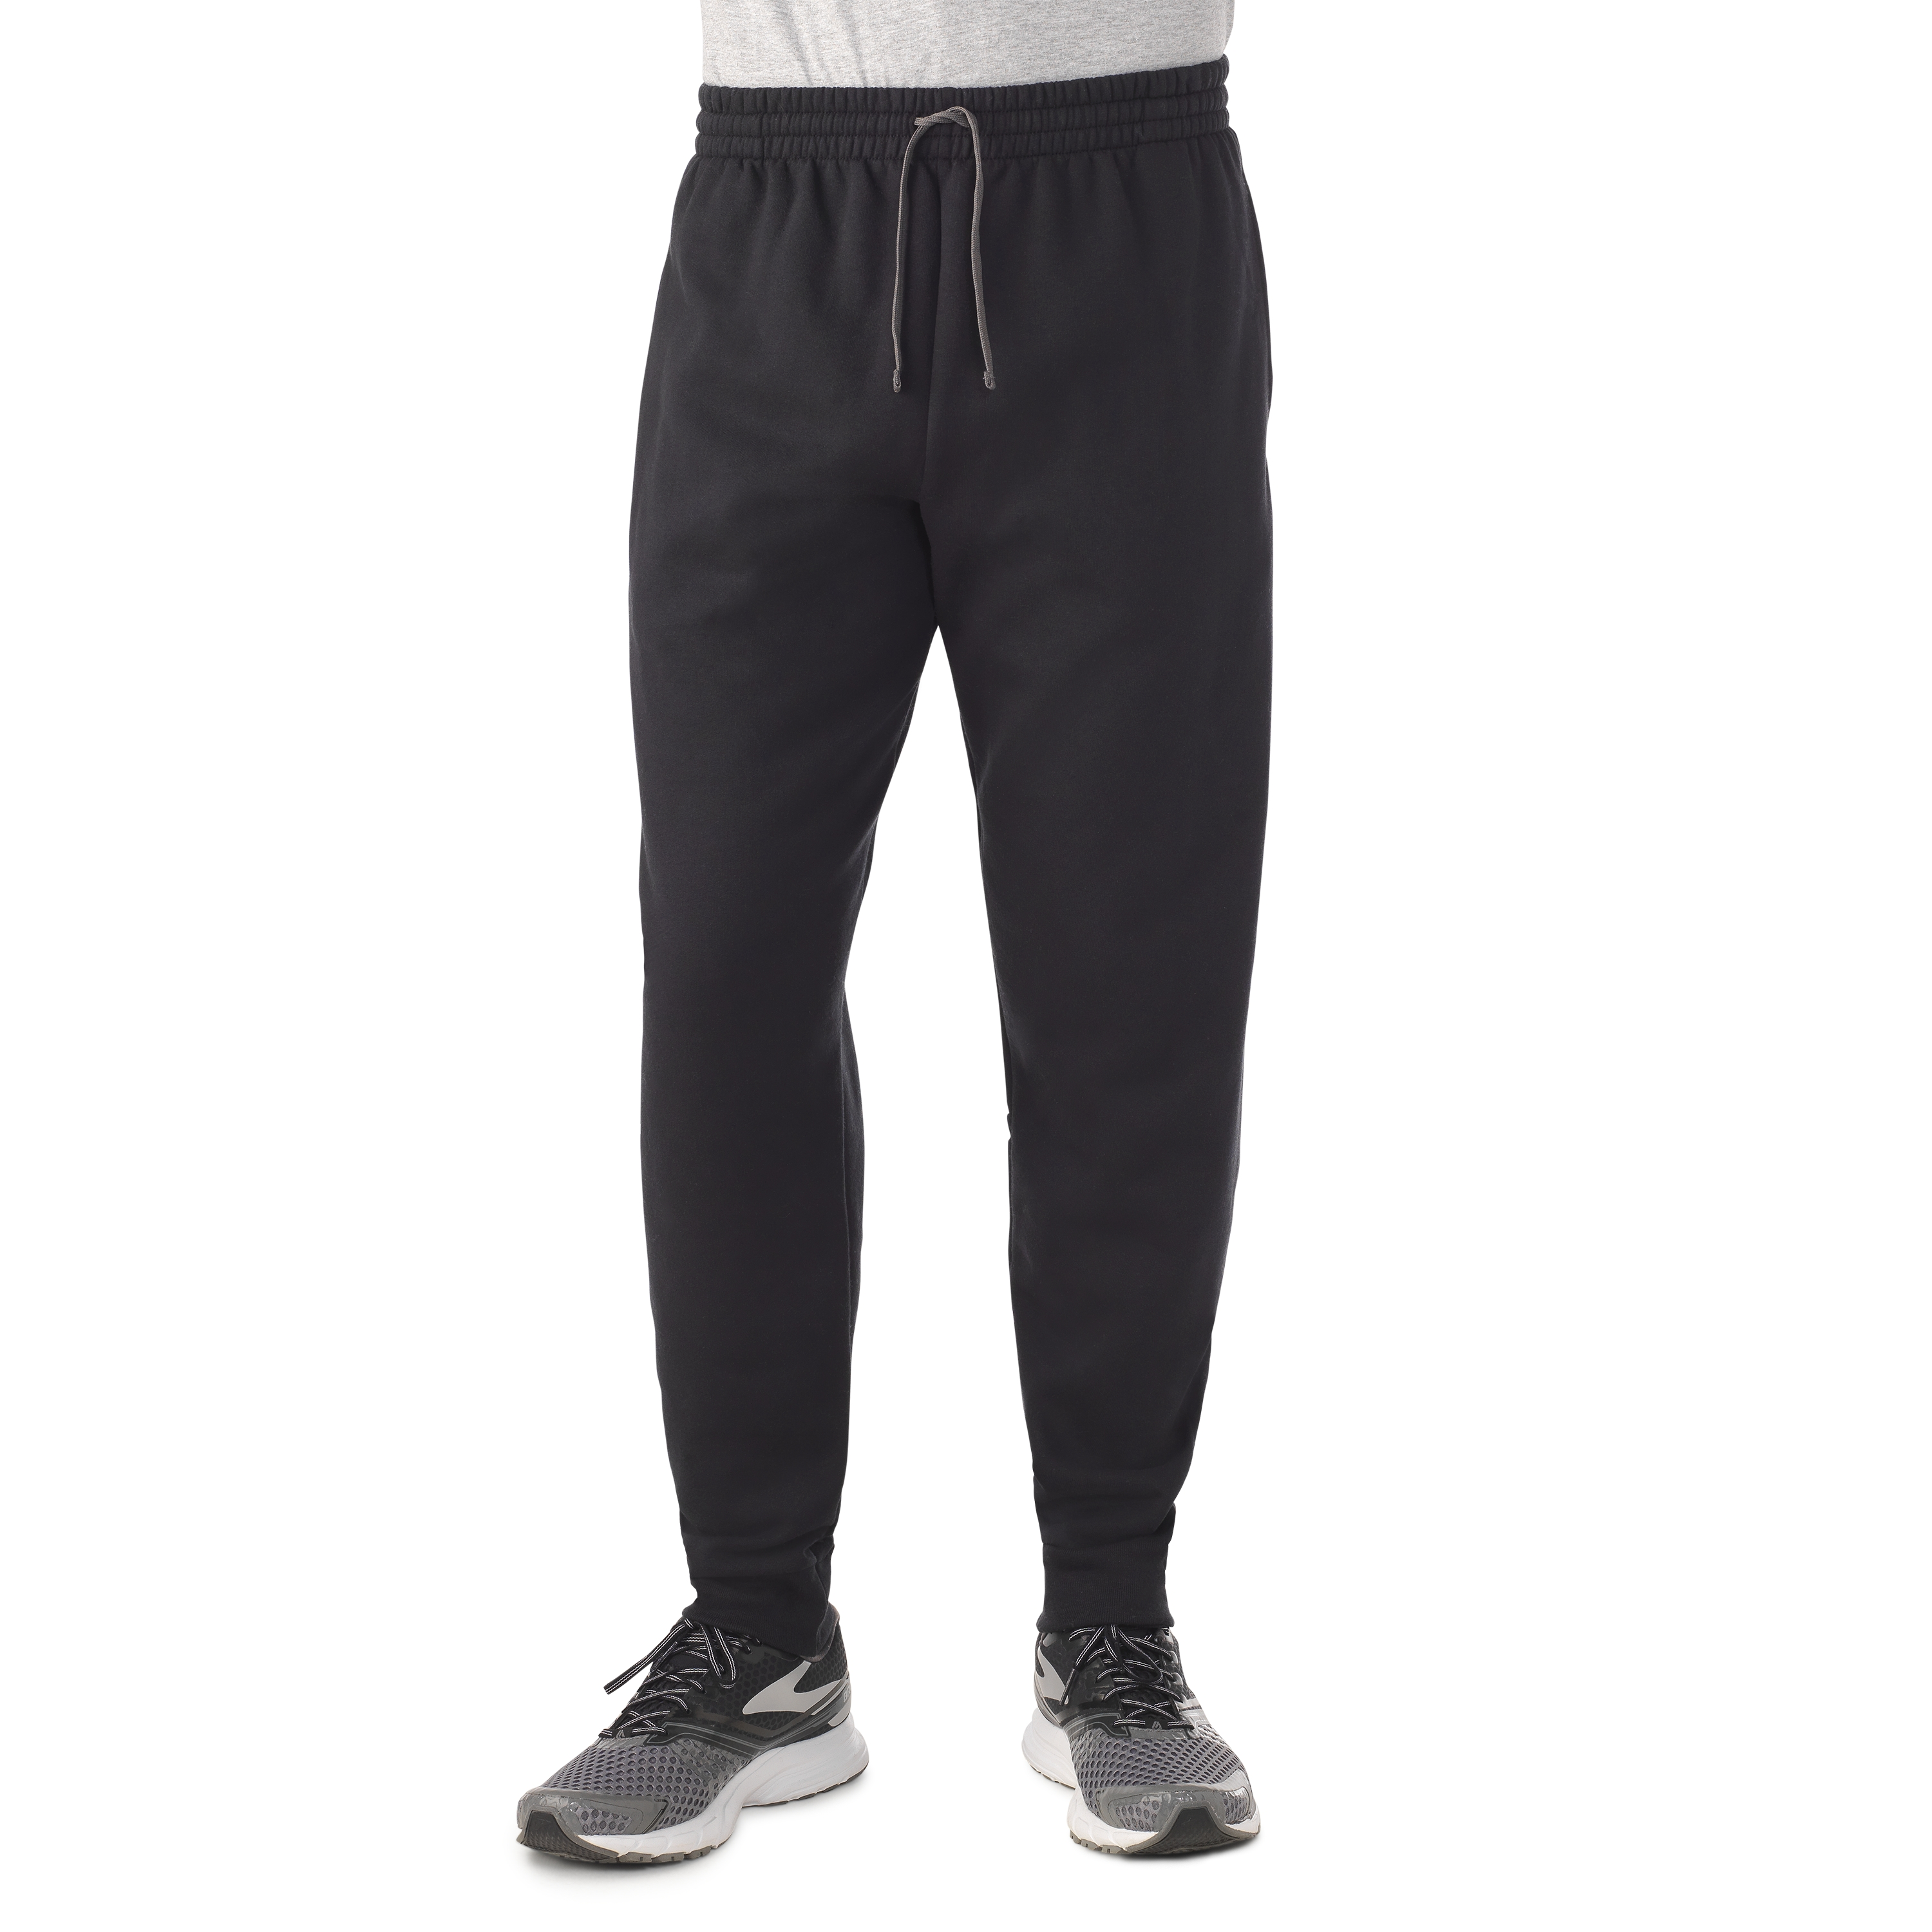 Fruit of the Loom Men's Jogger Sweatpant with Pocket